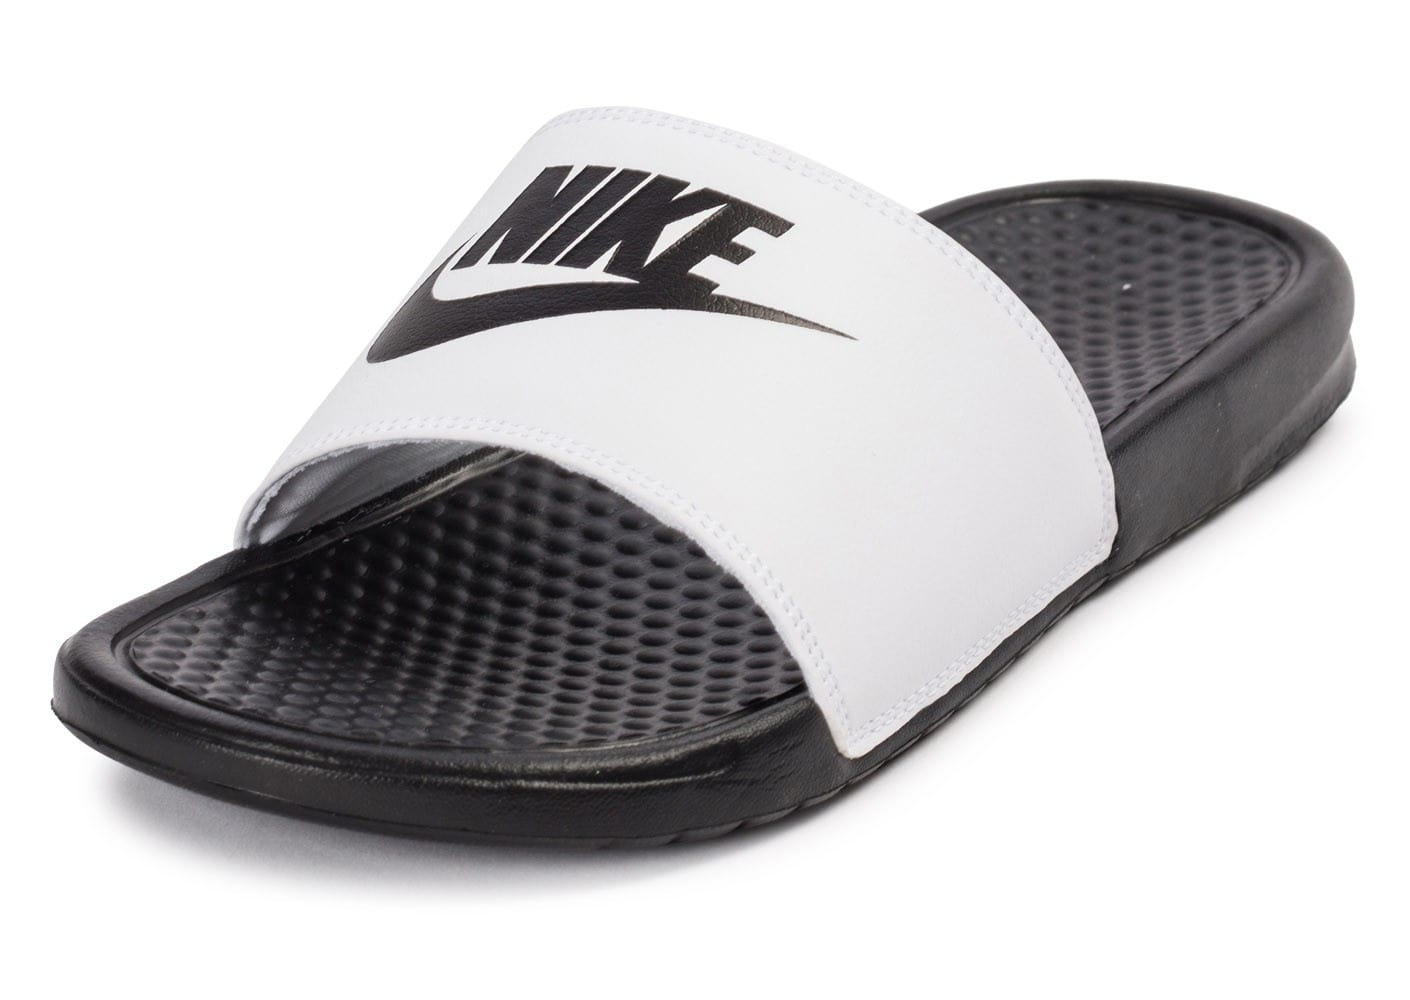 nike benassi d pareill e blanche et noire chaussures homme chausport. Black Bedroom Furniture Sets. Home Design Ideas